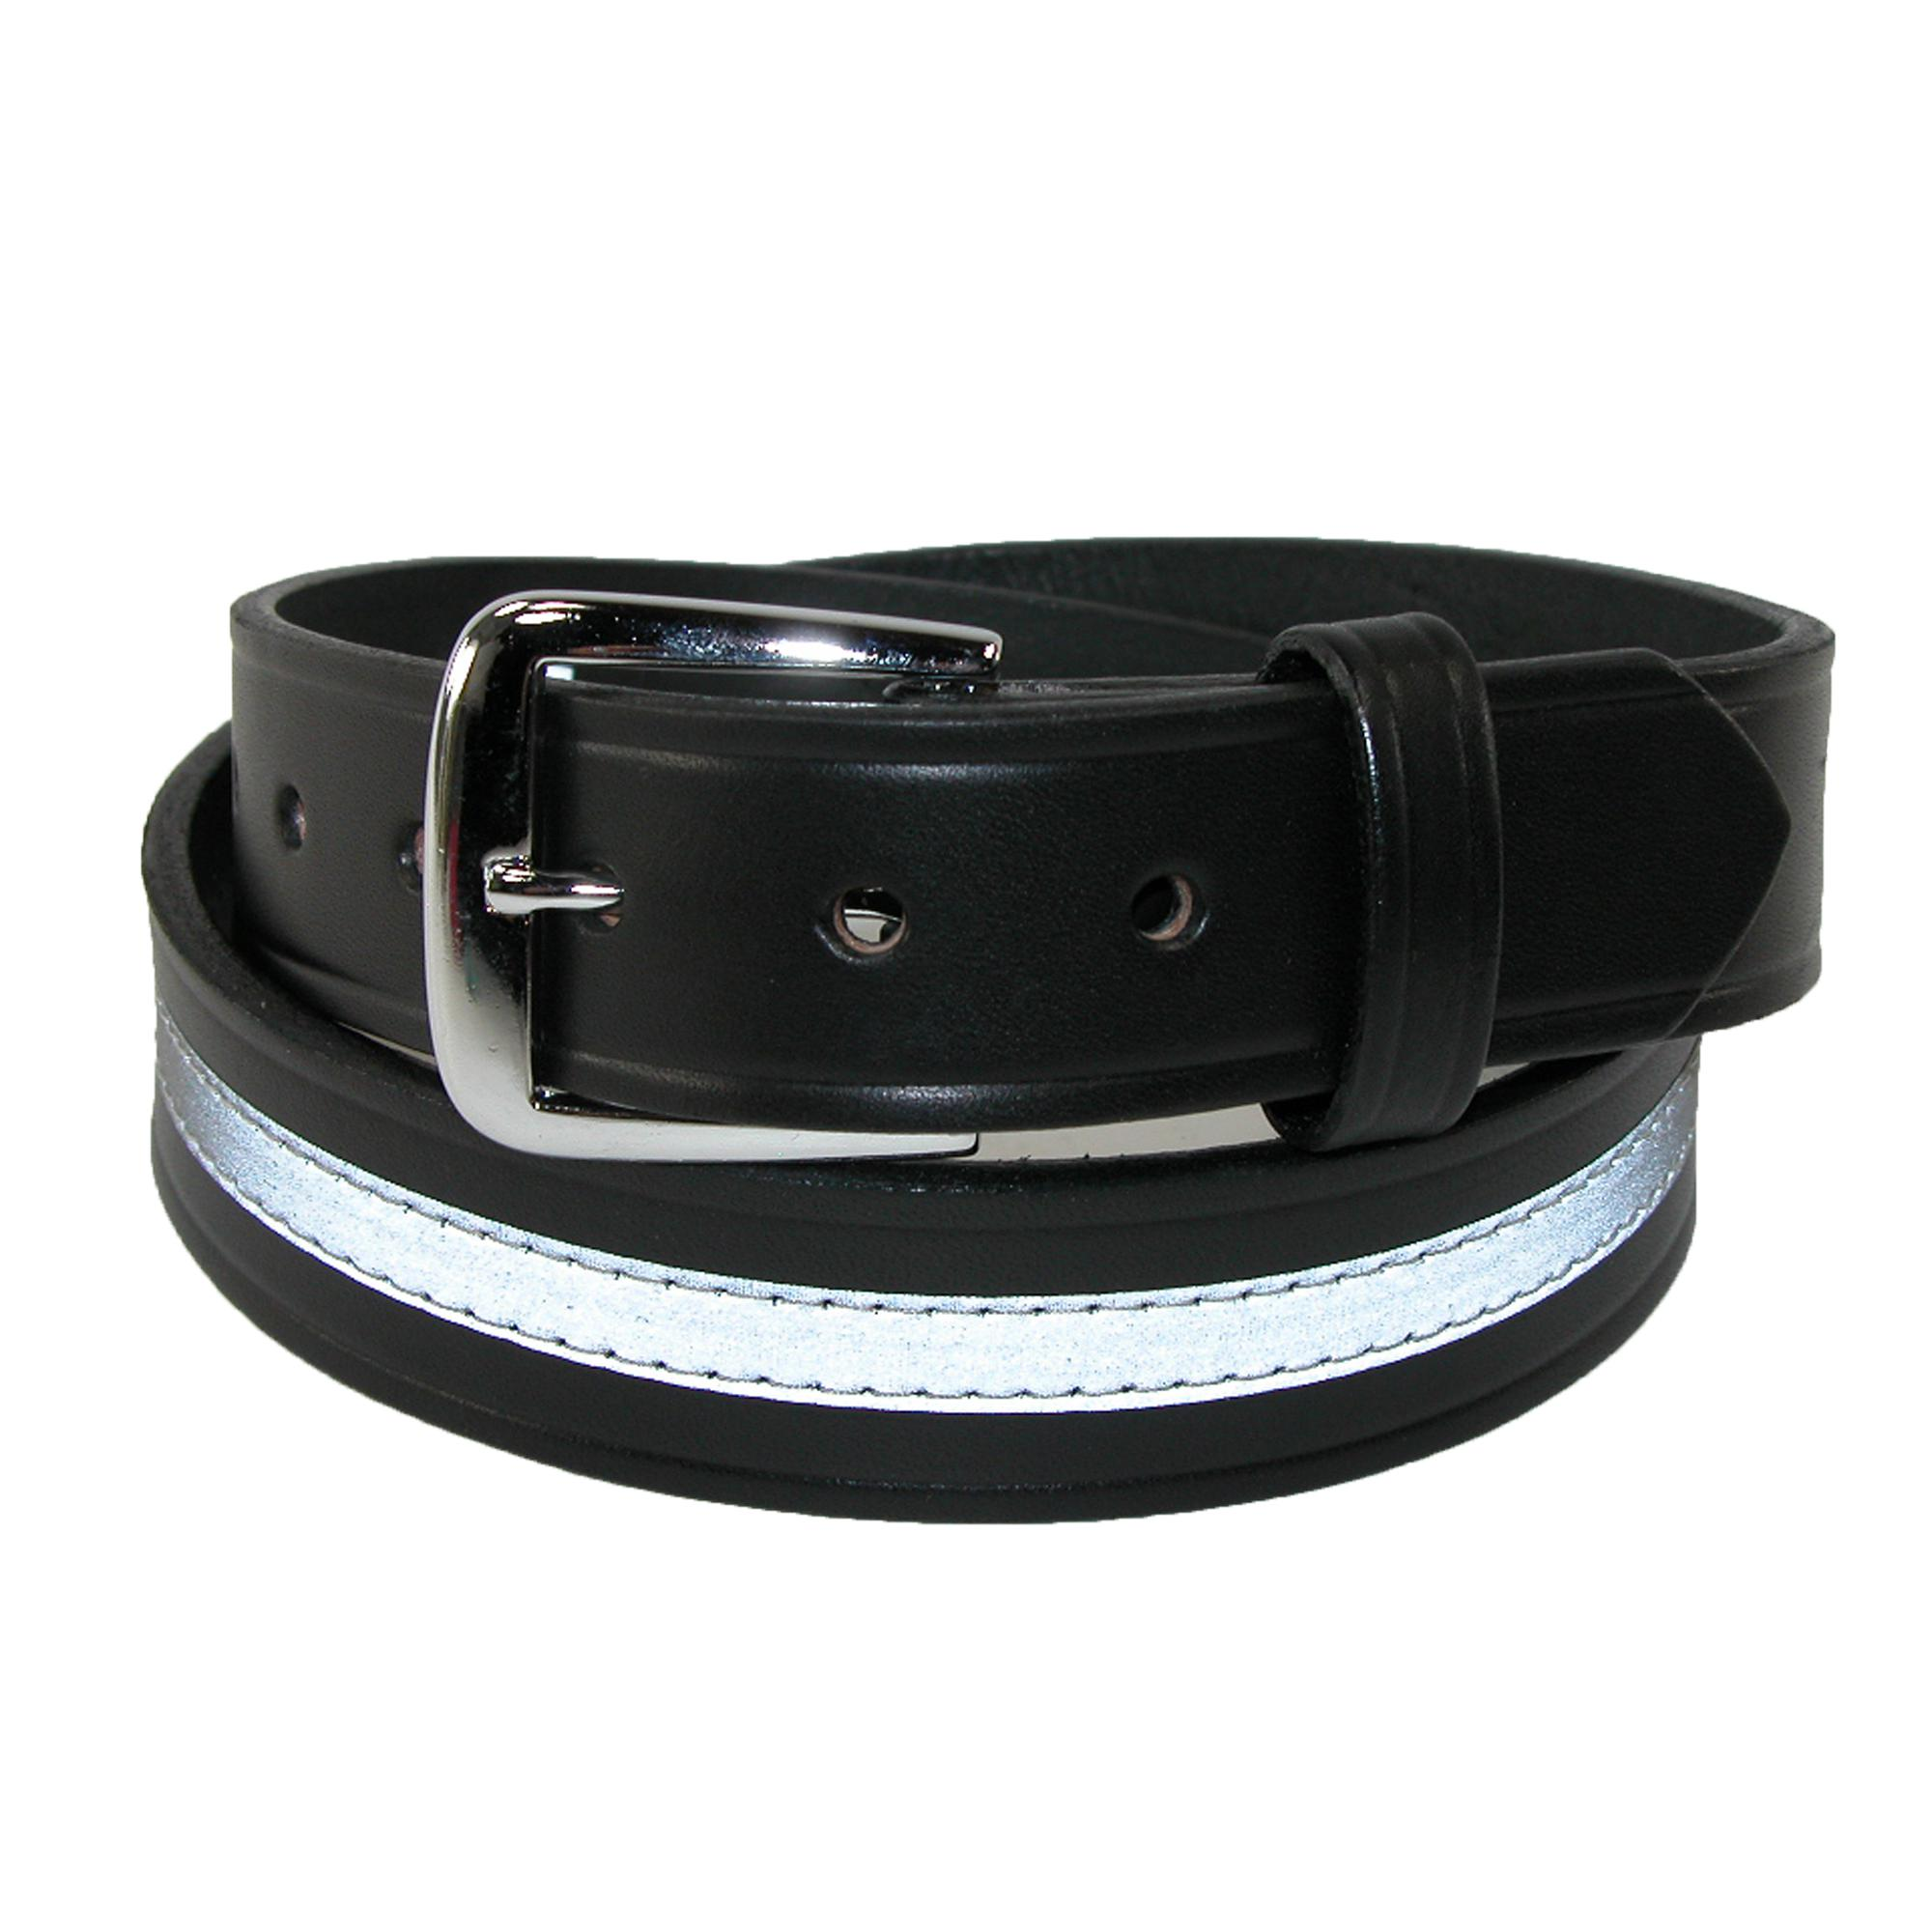 Boston Leather Men's Big & Tall Leather 1 1/2 Inch Reflective Work Belt